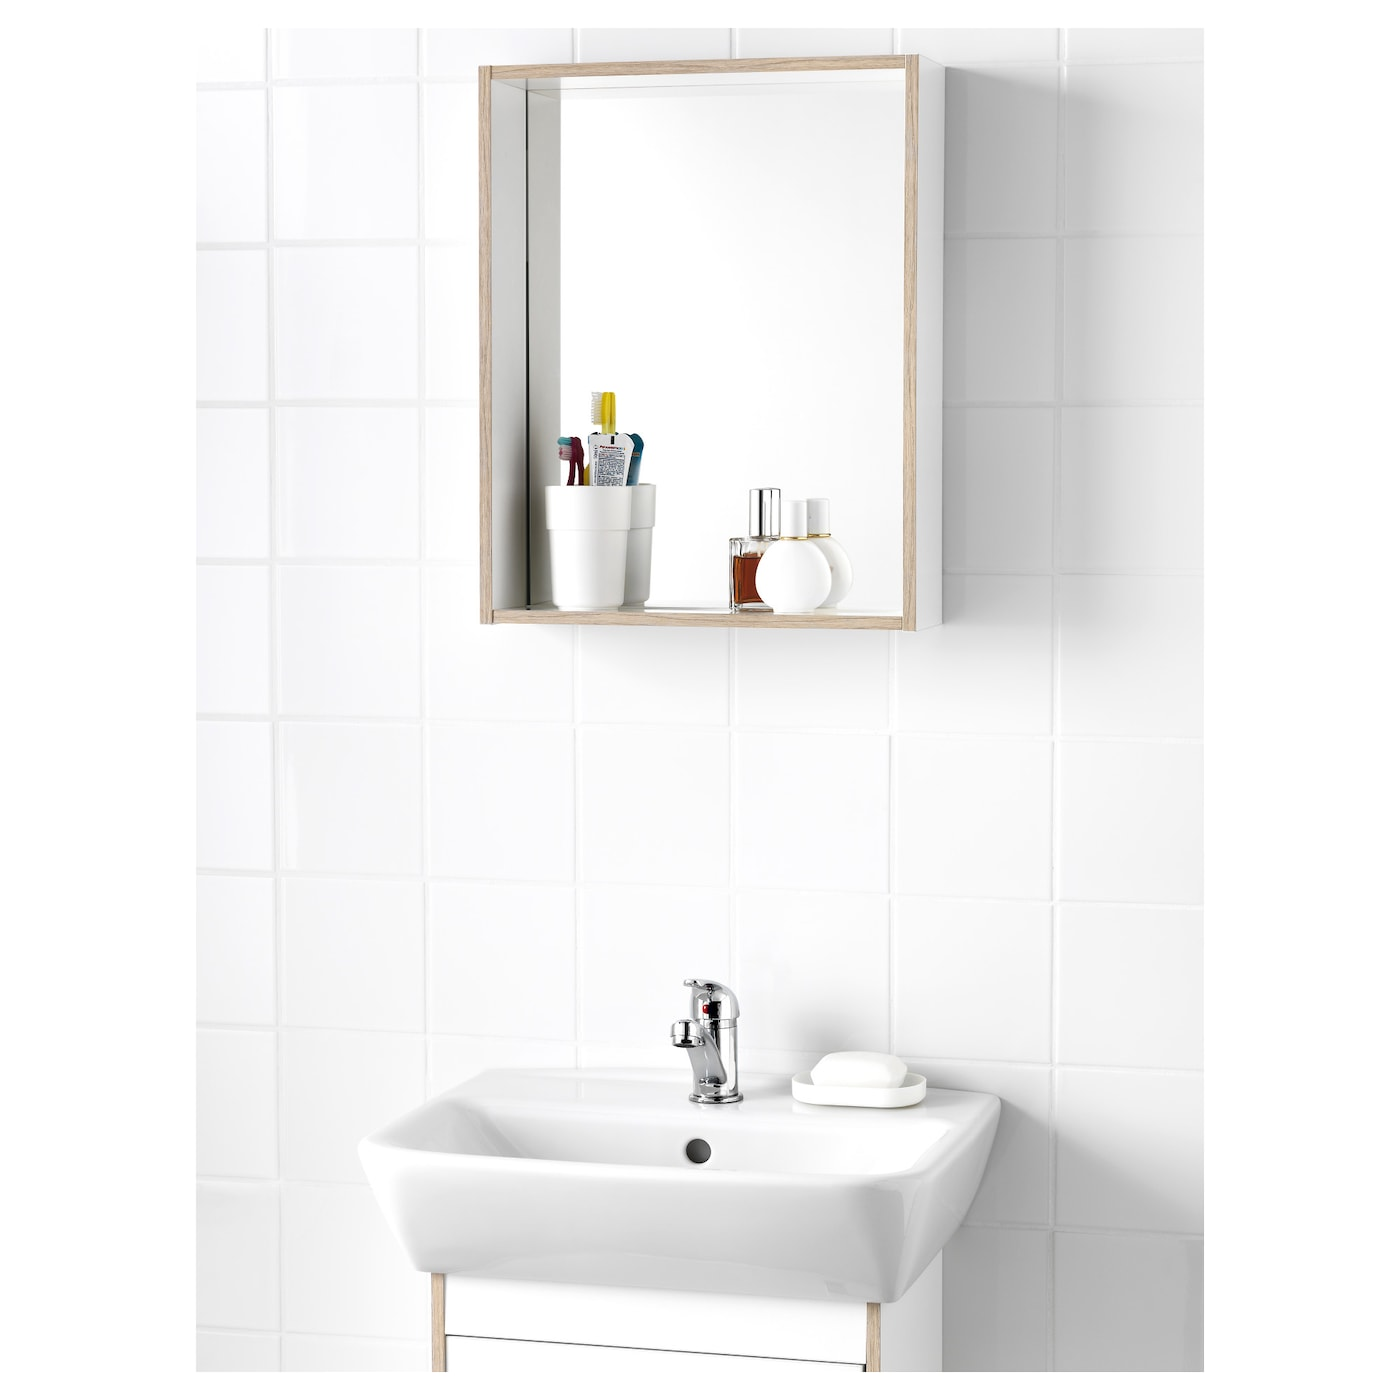 ikea bathroom mirror with shelf tyngen mirror with shelf white ash effect 40x12x50 cm ikea 23511